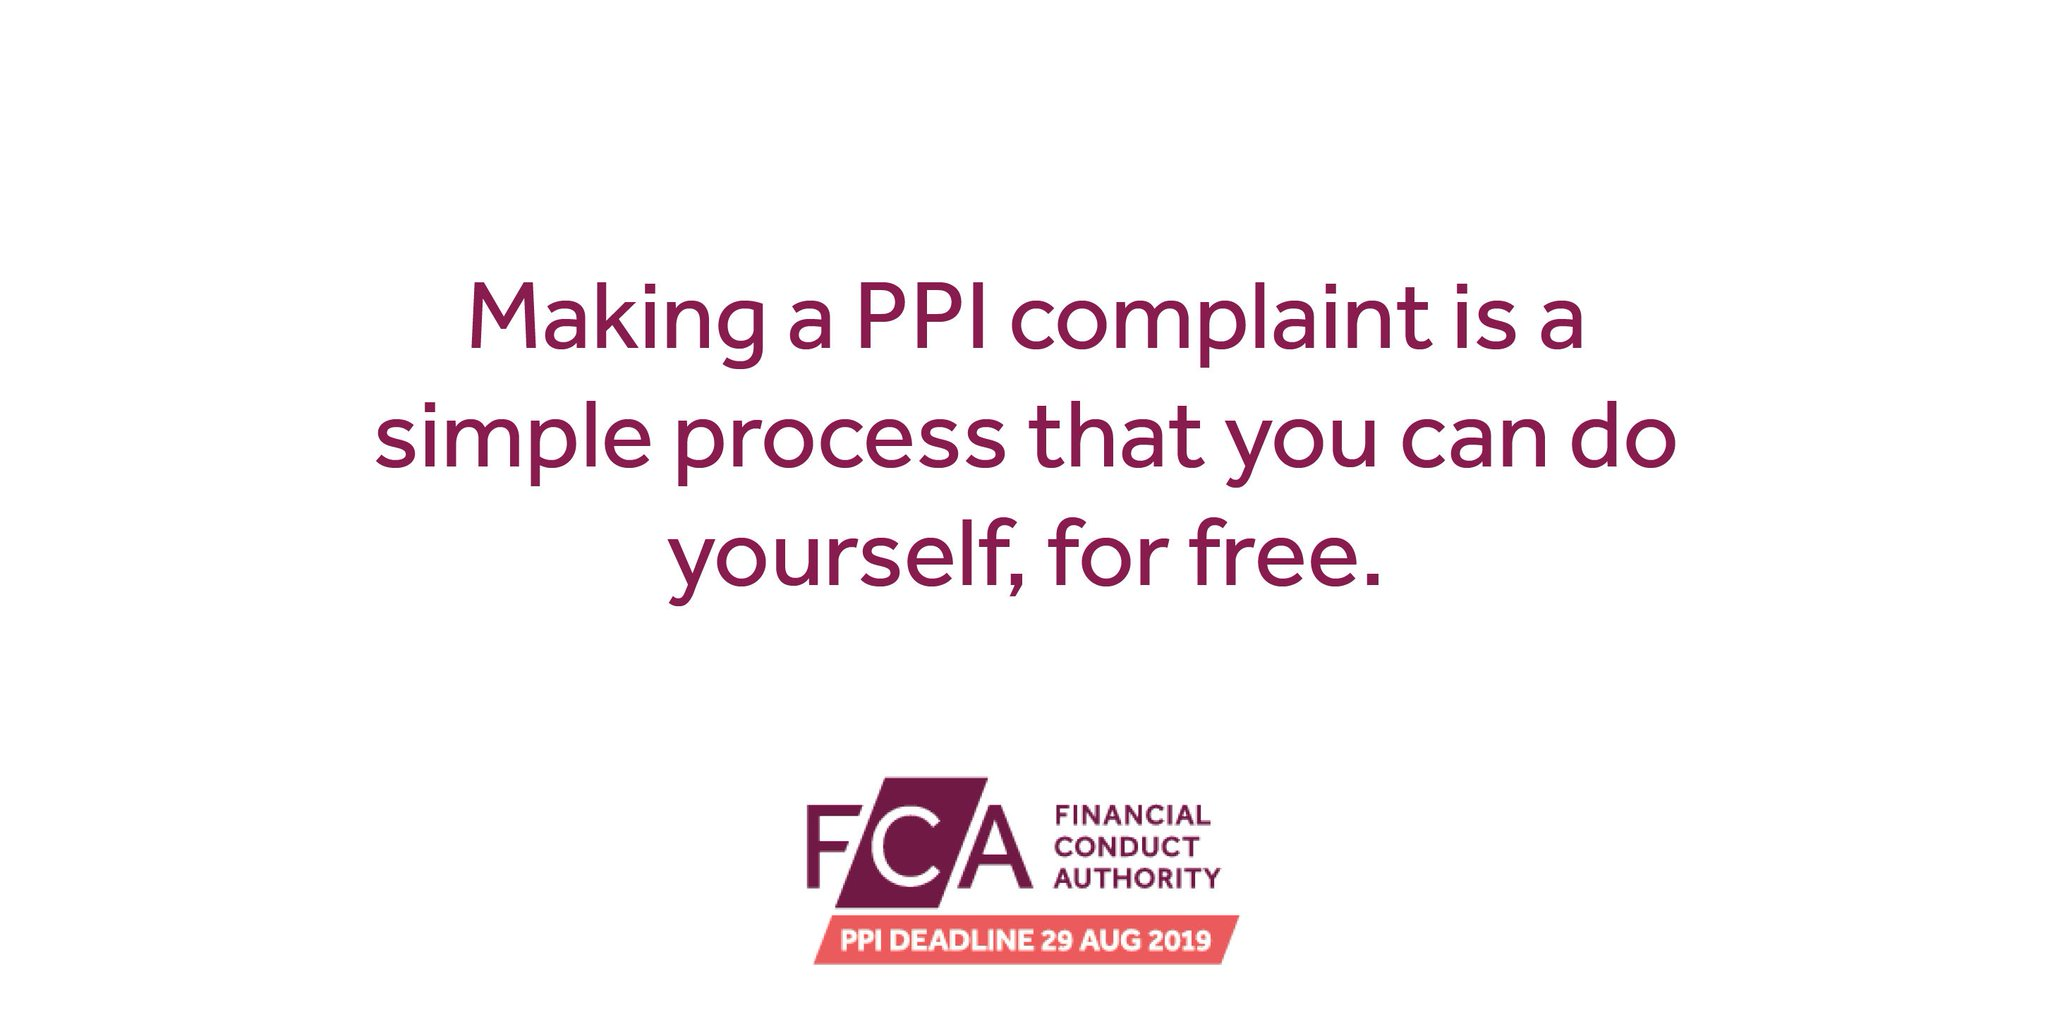 The fca ppi deadline on twitter did you know that you can make a the fca ppi deadline on twitter did you know that you can make a ppi complaint yourself for free all you need is your name date of birth and previous solutioingenieria Gallery